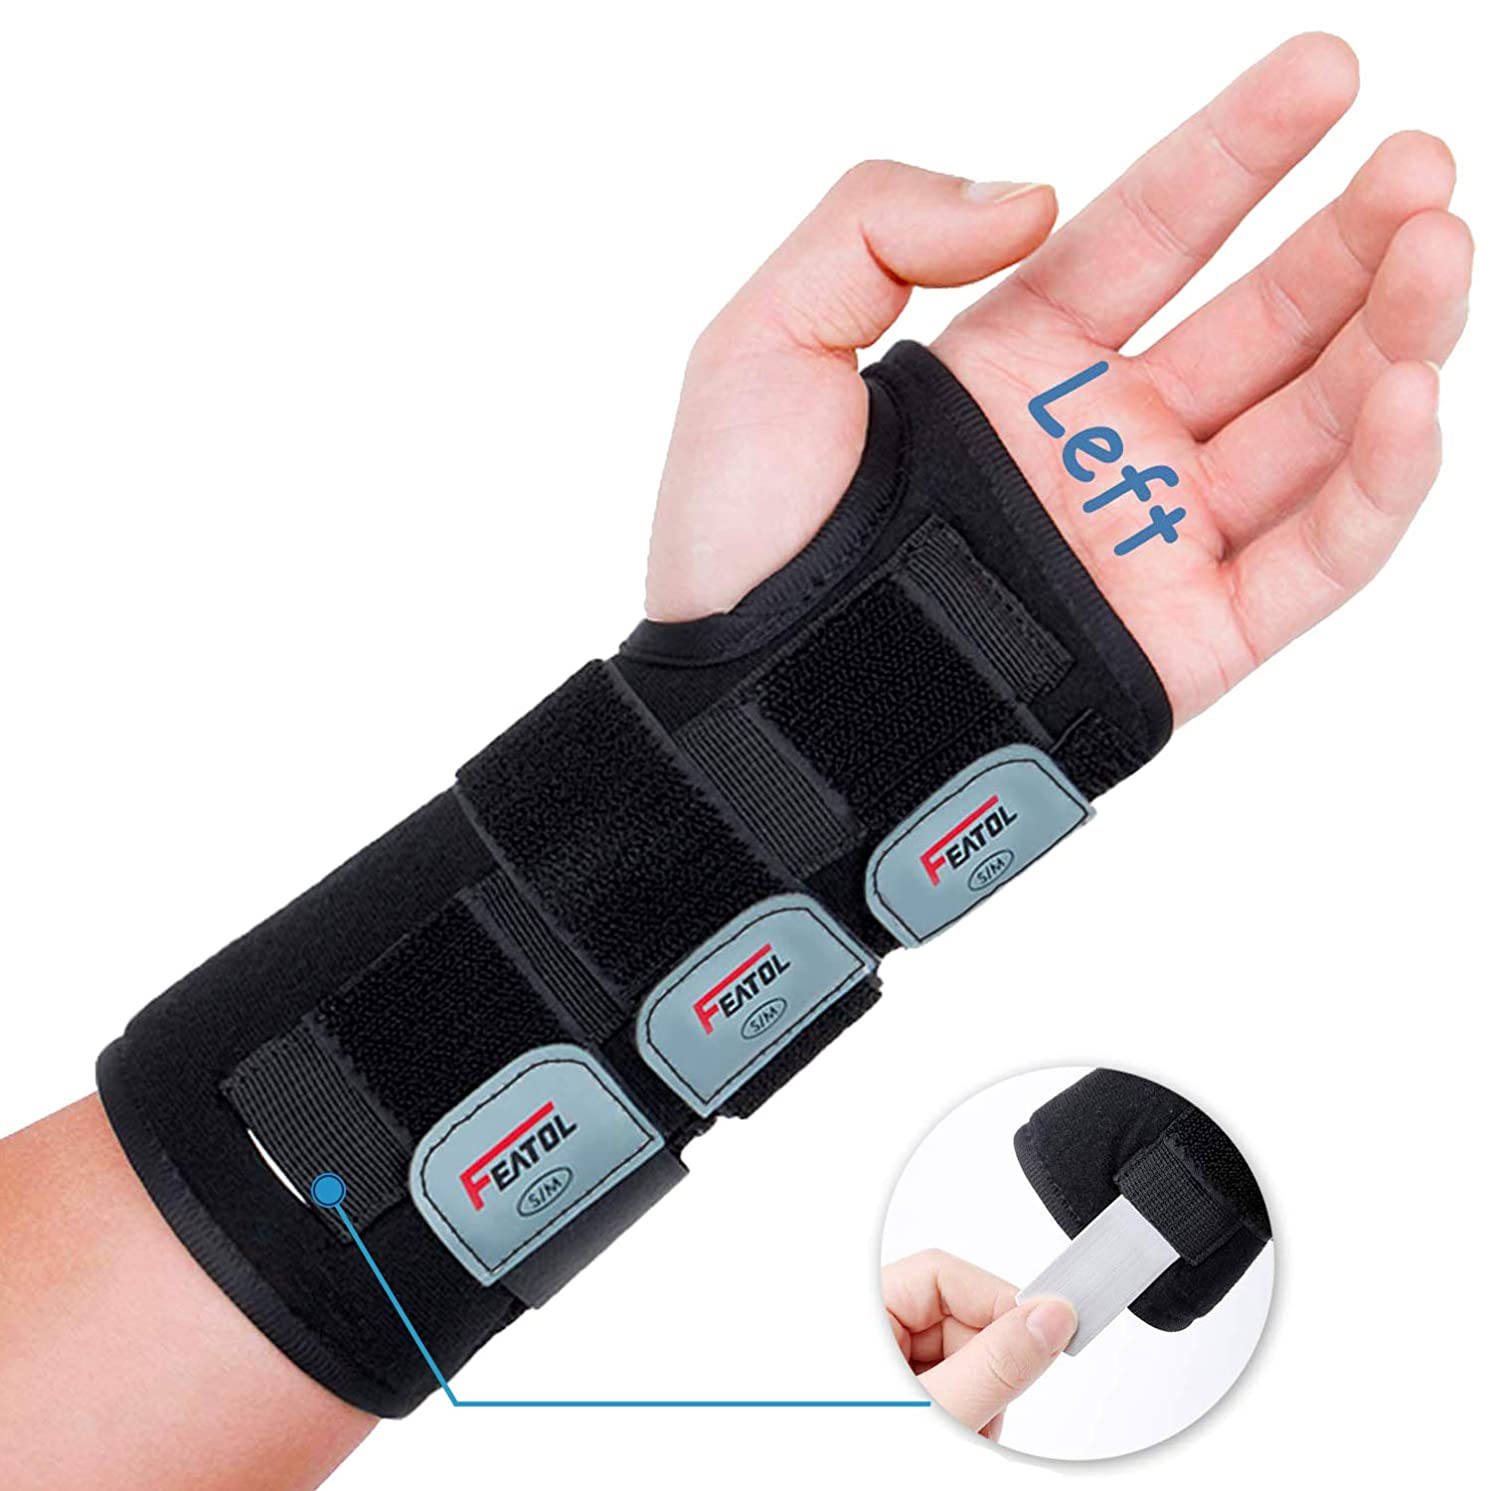 Featol Adjustable Wrist Support Brace with Splints, Left Hand,Small/Medium,for Carpal Tunnel,Injuries,Wrist Pain, Sprain